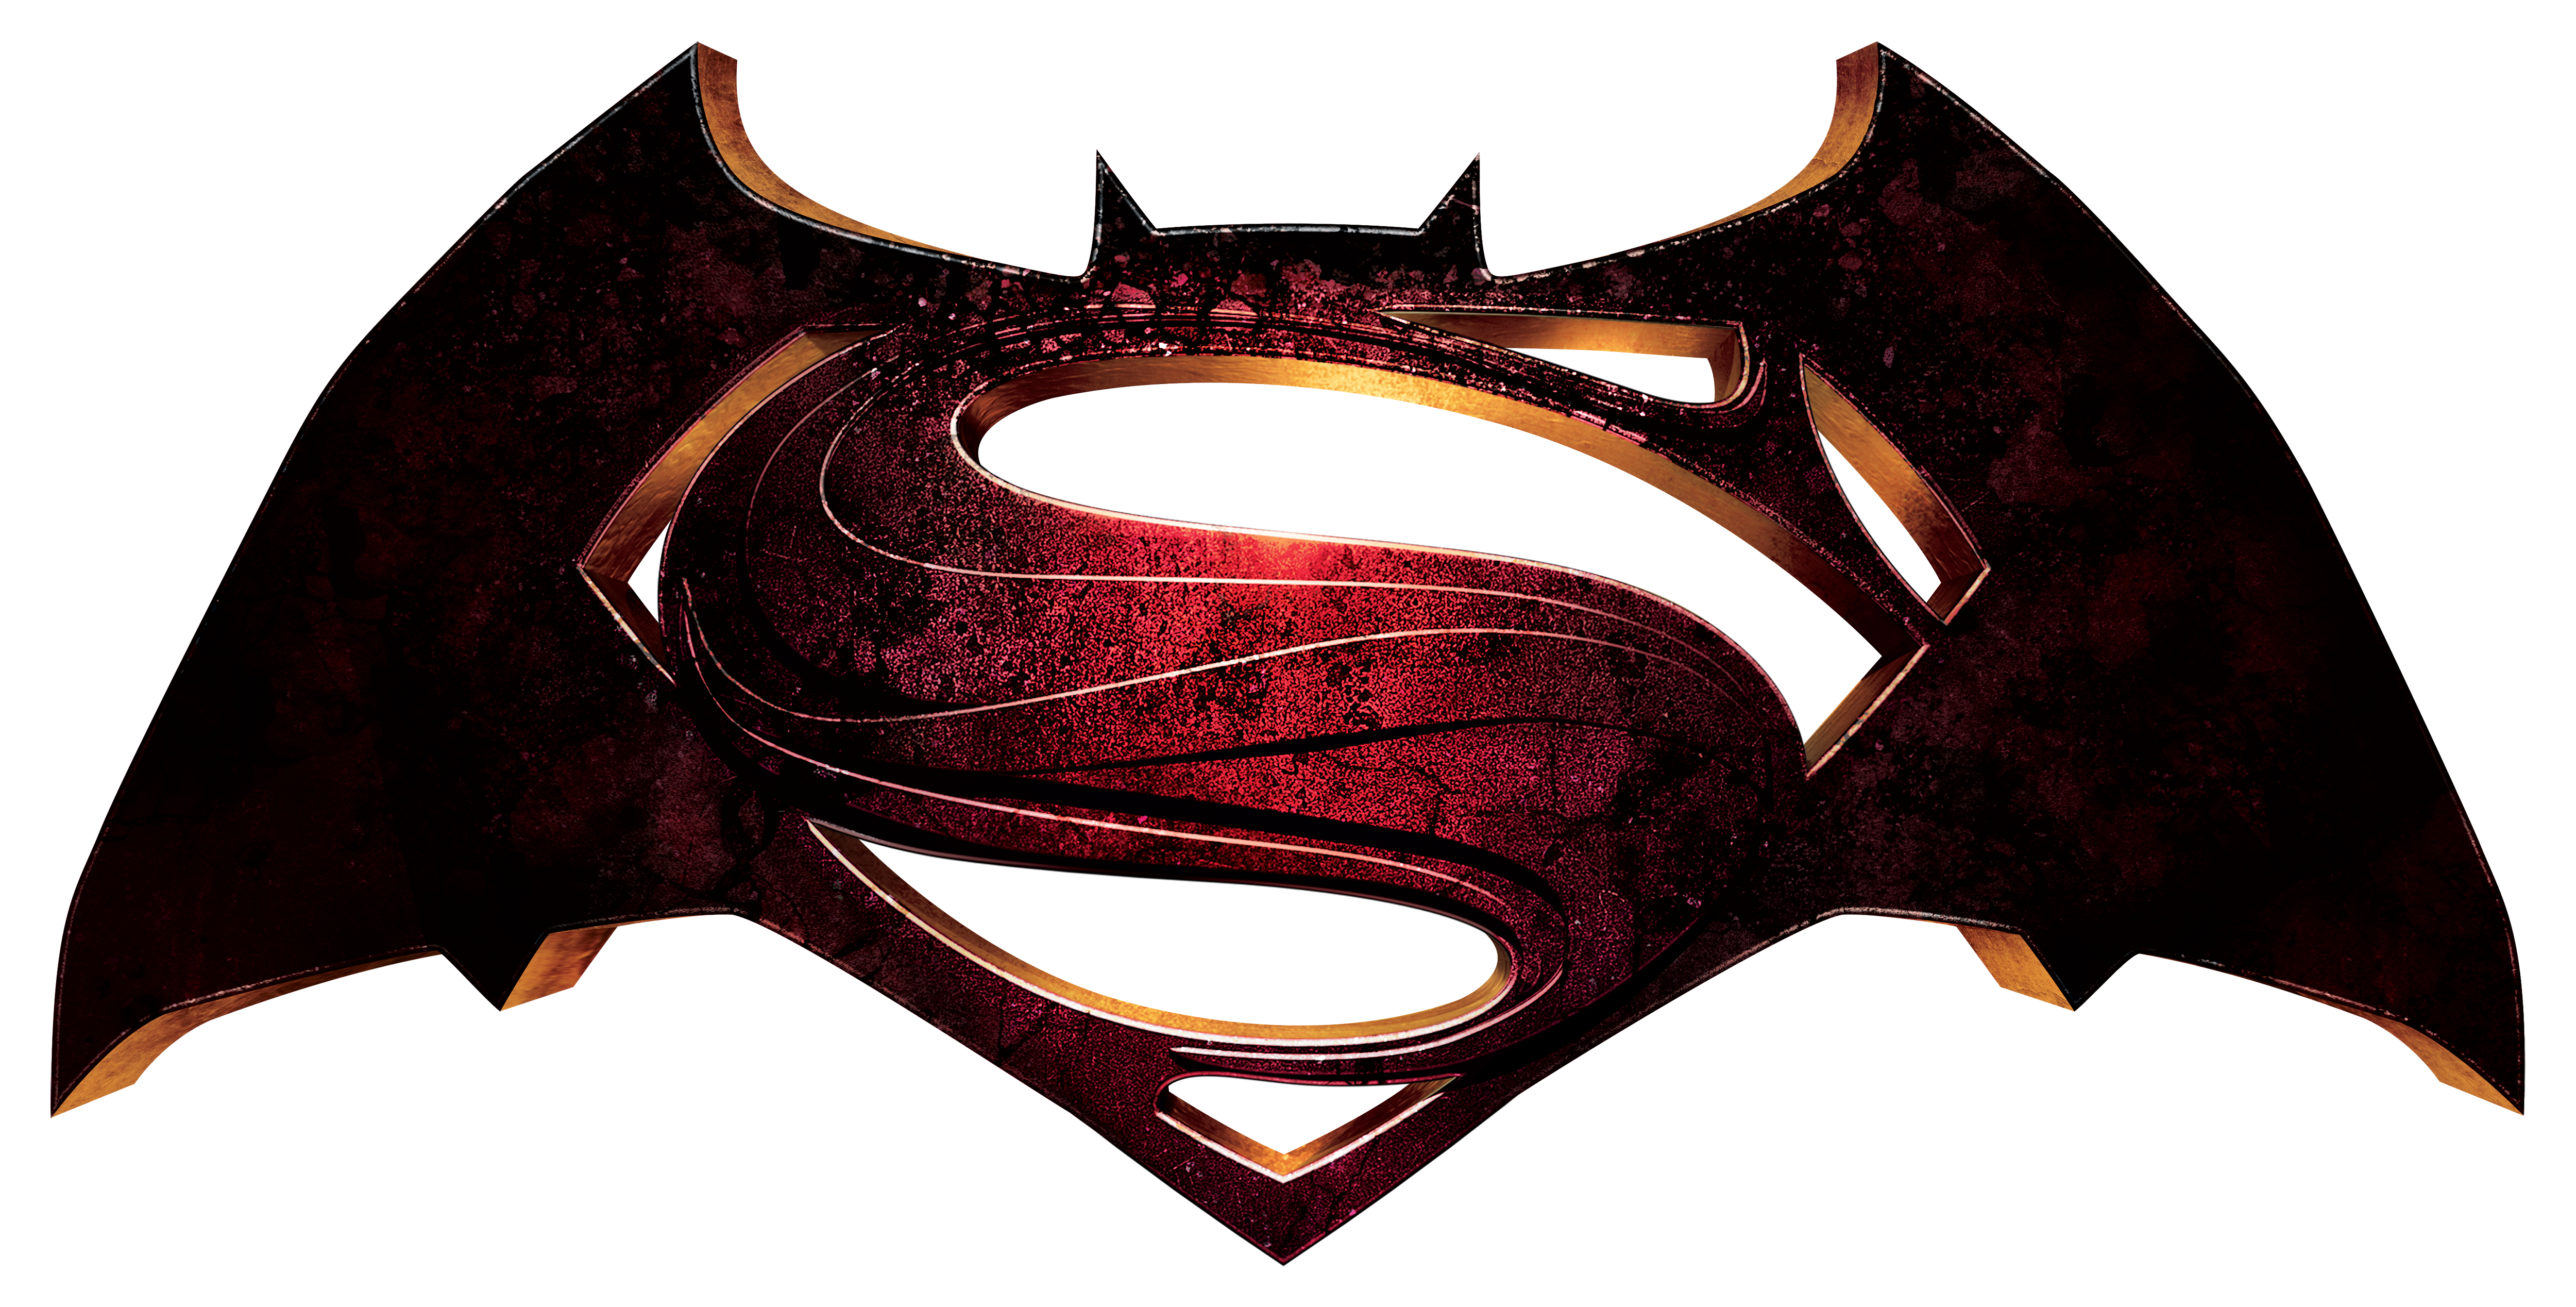 Batman v superman batman cliparts banner black and white download BATMAN V SUPERMAN: DAWN OF JUSTICE ? Logos PNG | Textless Movies ... banner black and white download